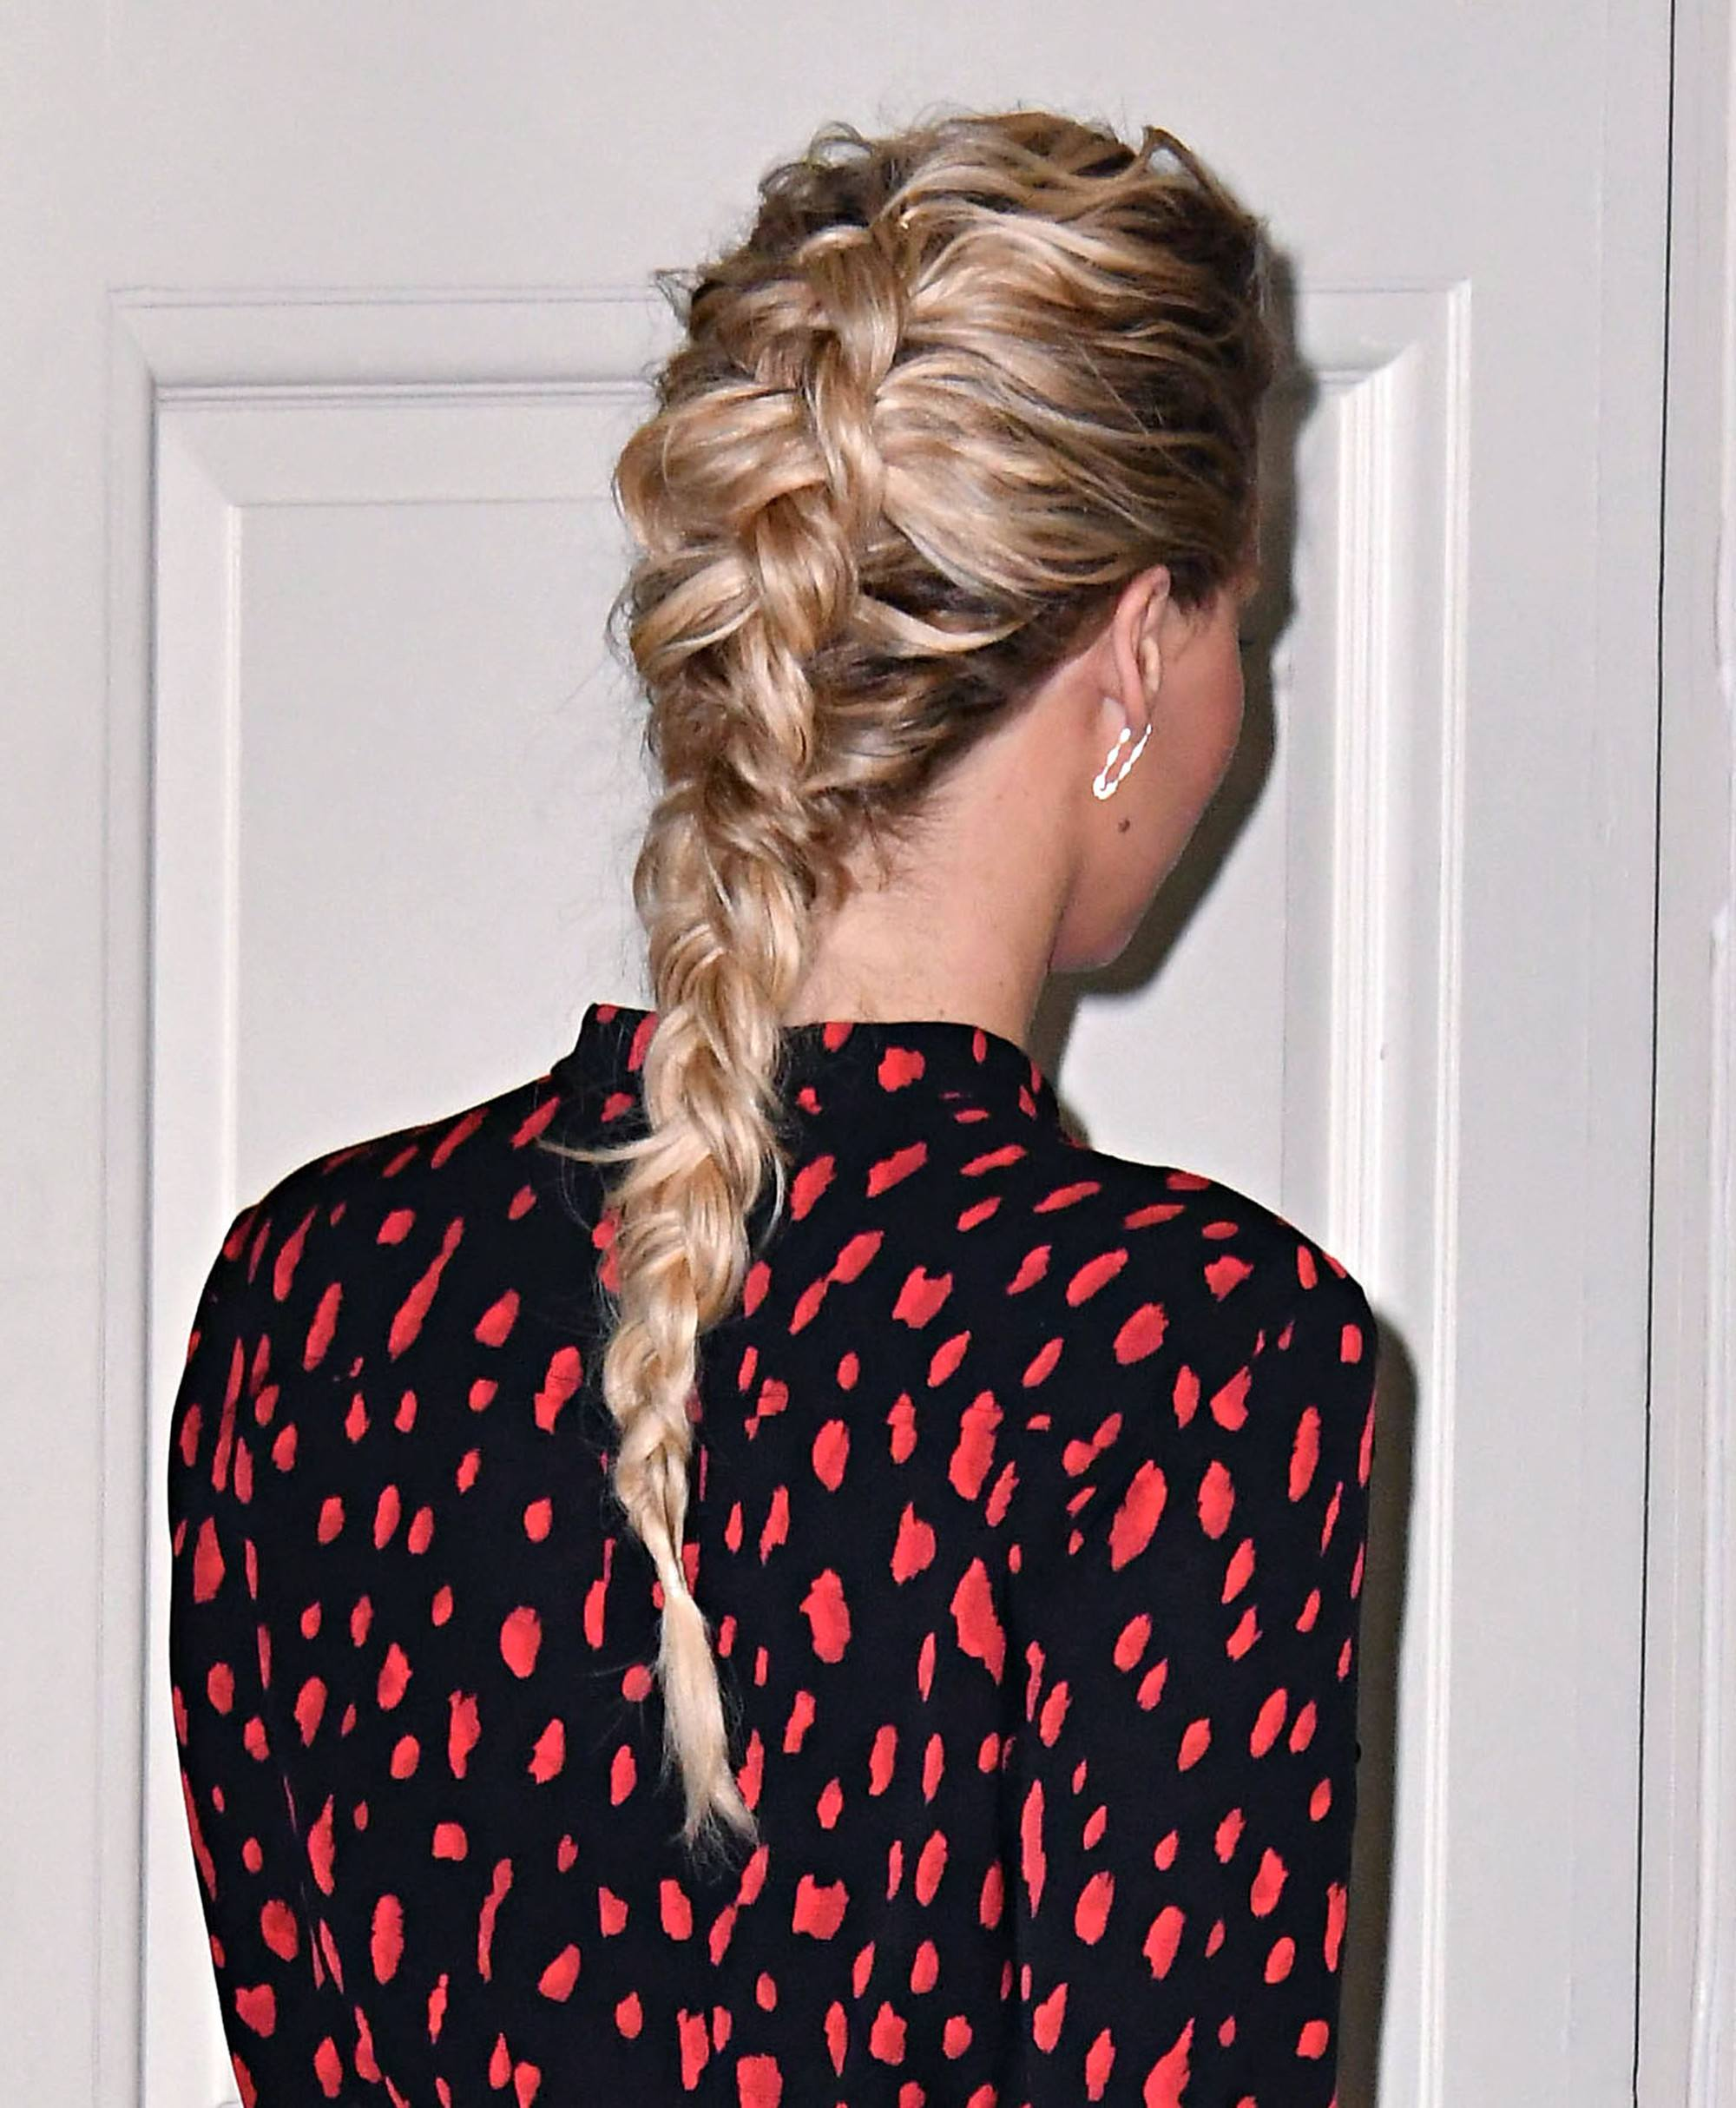 Back shot of a woman with golden blonde hair styled into a reverse french braid, wearing a spotted dress